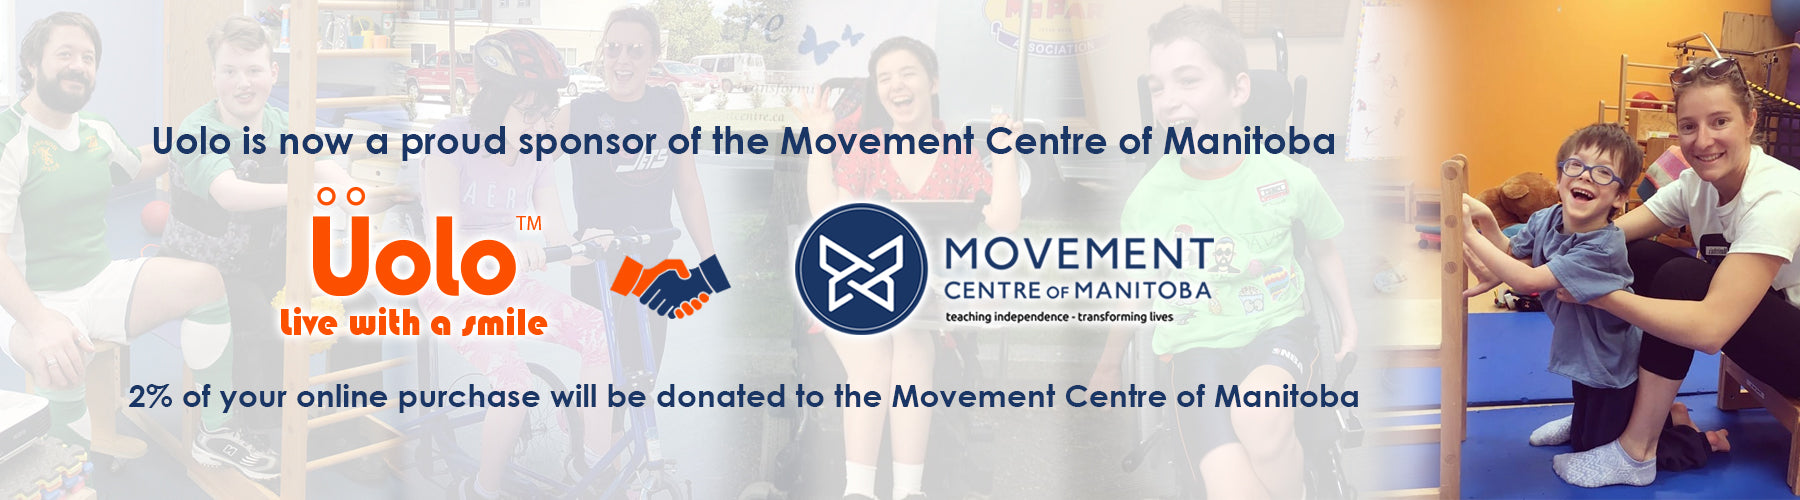 Proudly partnered with the Movement Centre of Manitoba!